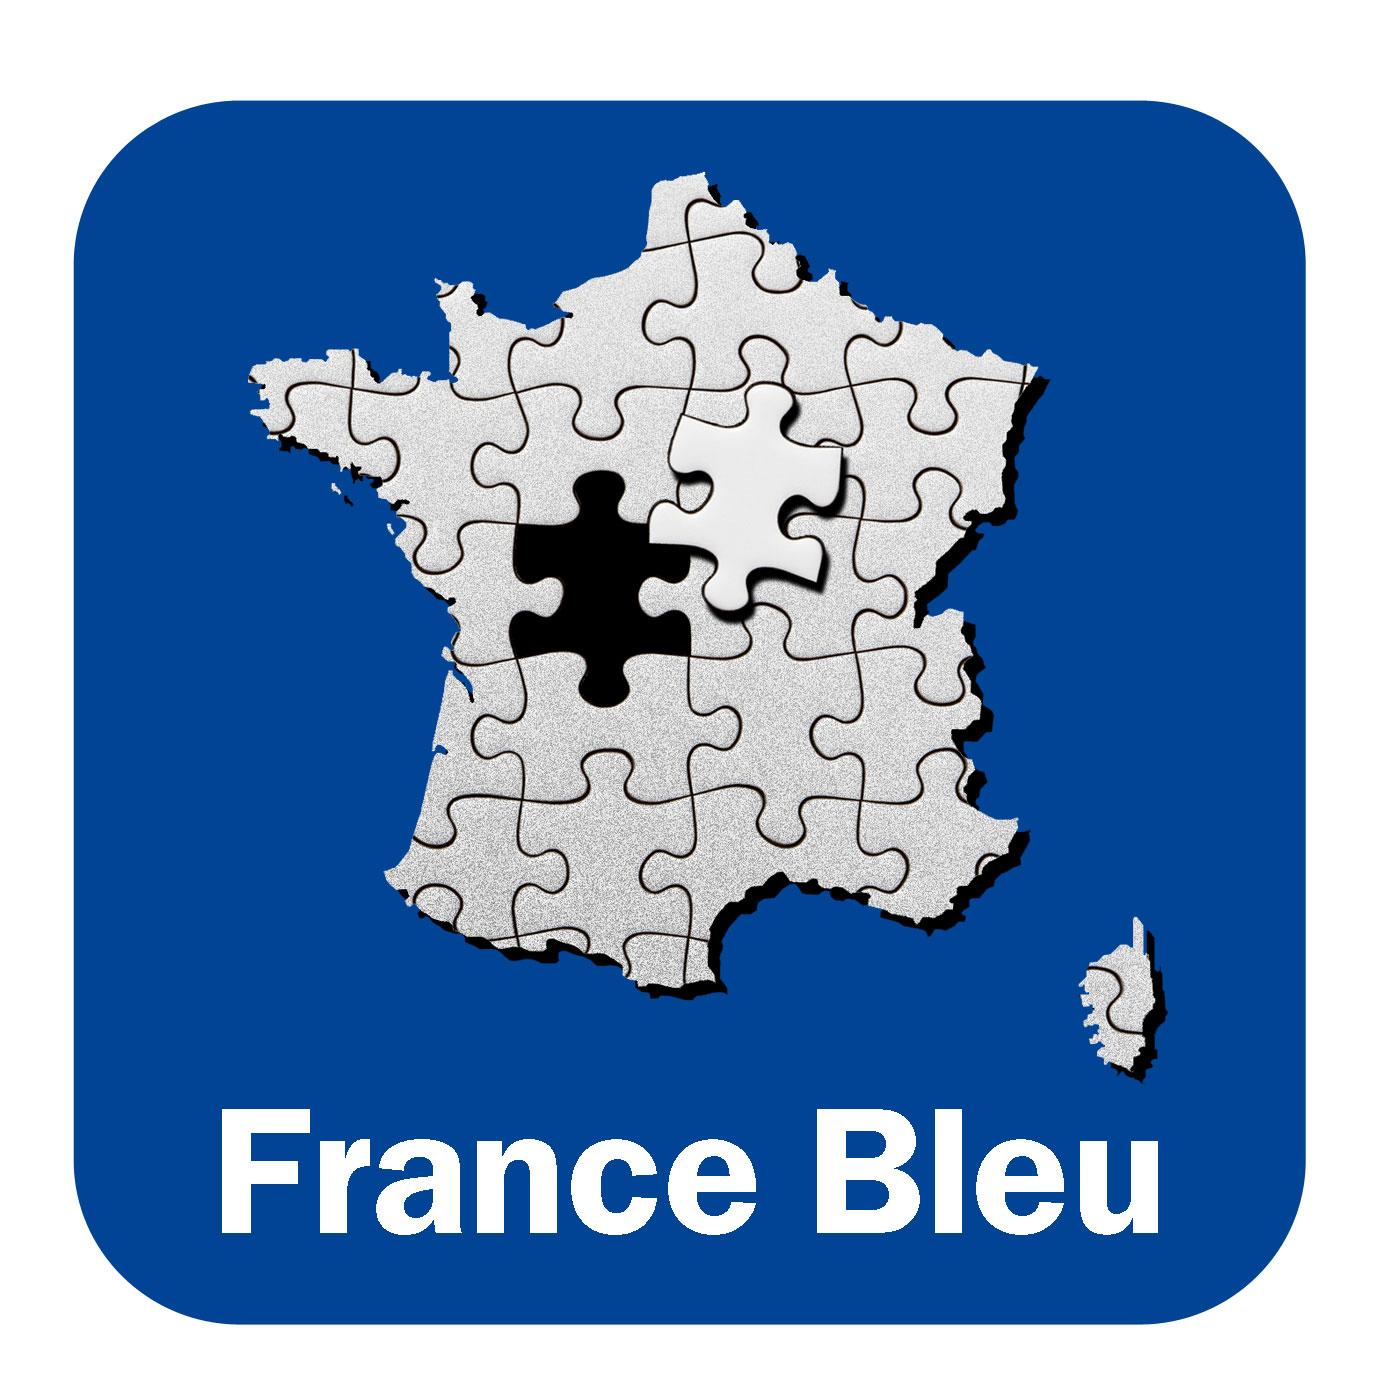 On cuisine ensemble France Bleu Alsace